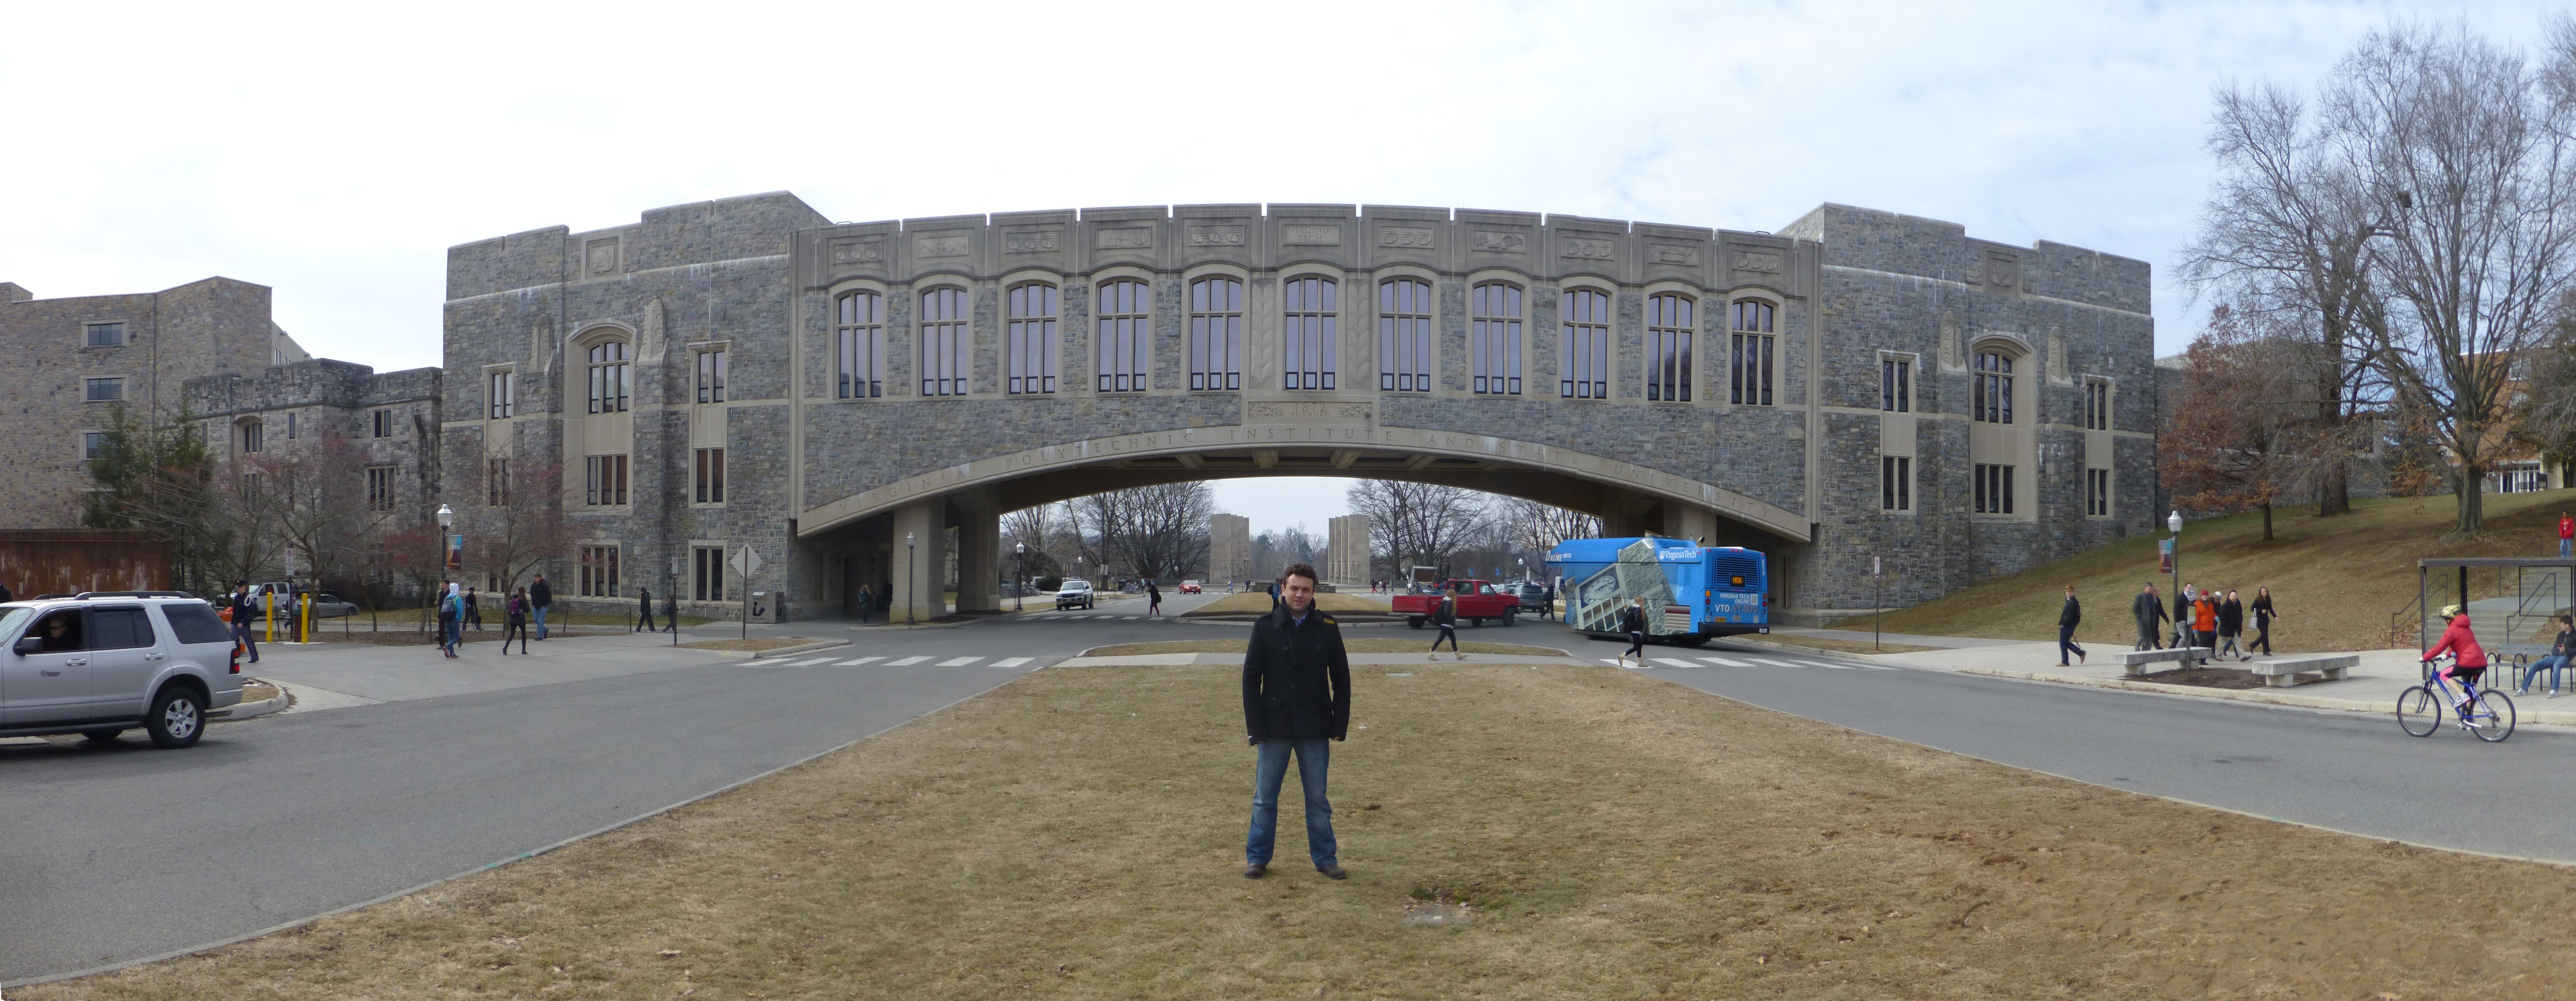 The main entrance to Virginia Tech - See, it really is overarching!